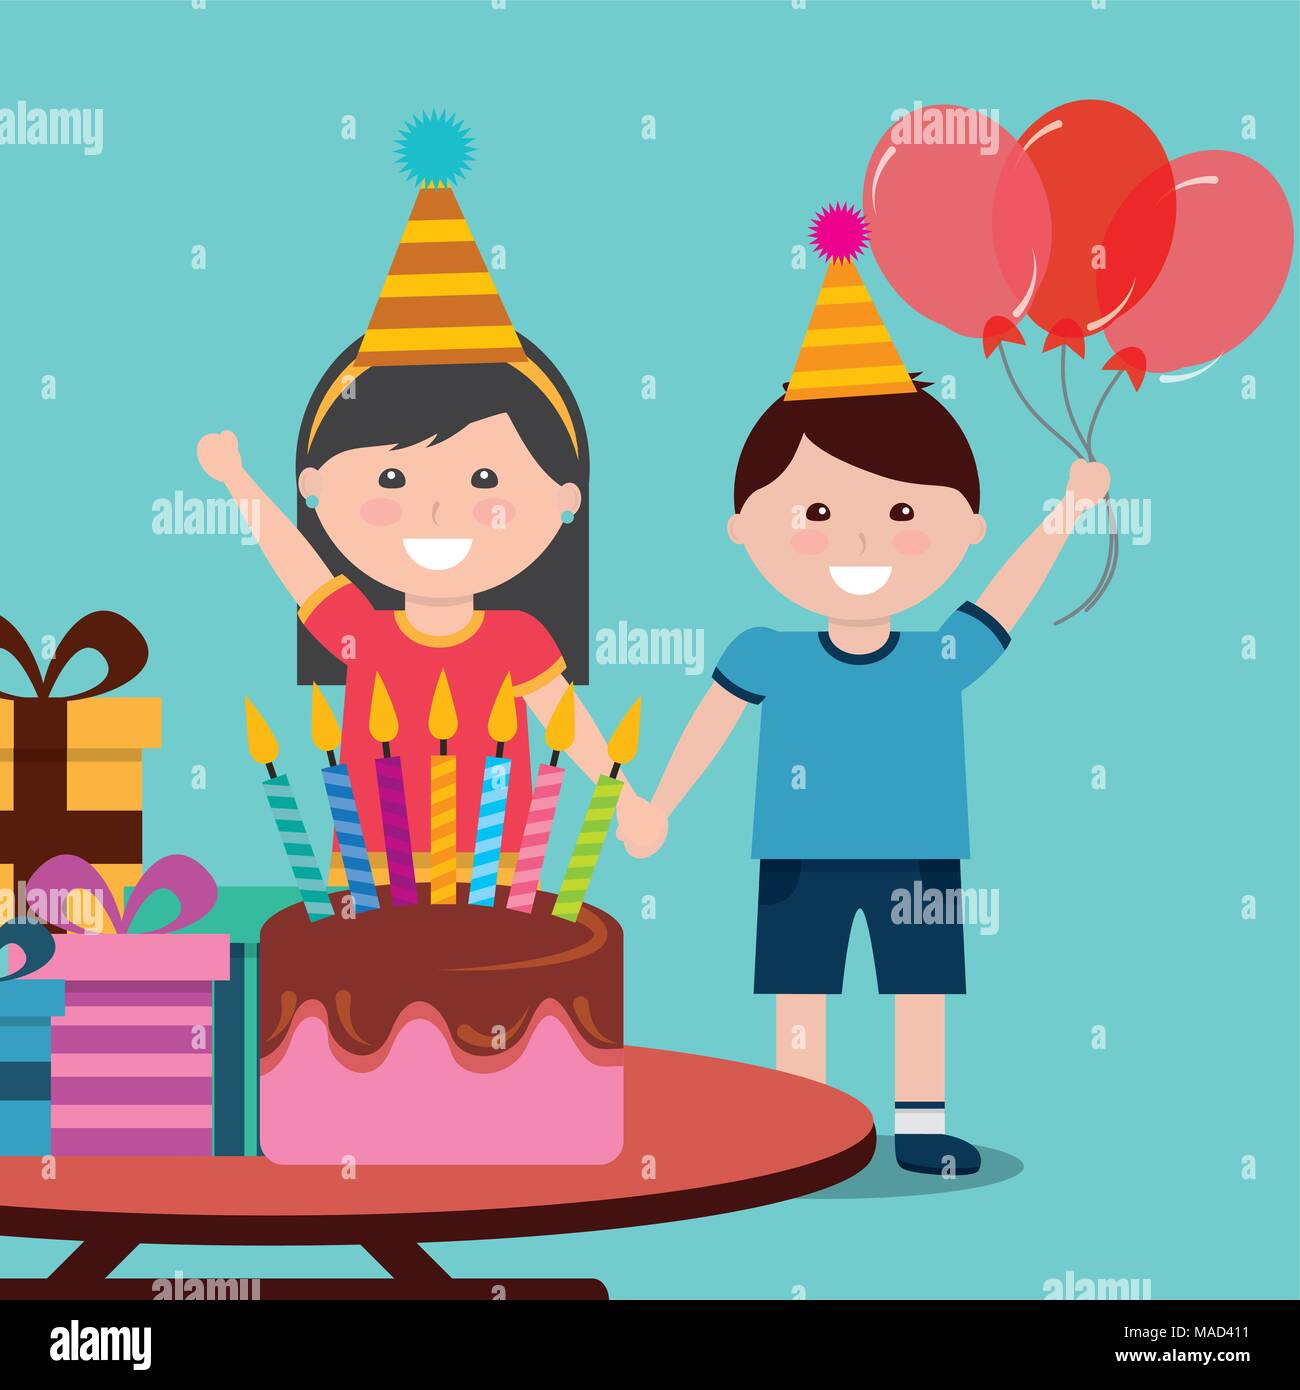 Cute Girl And Boy Celebration Happy Birthday Cake Gifts Stock Vector